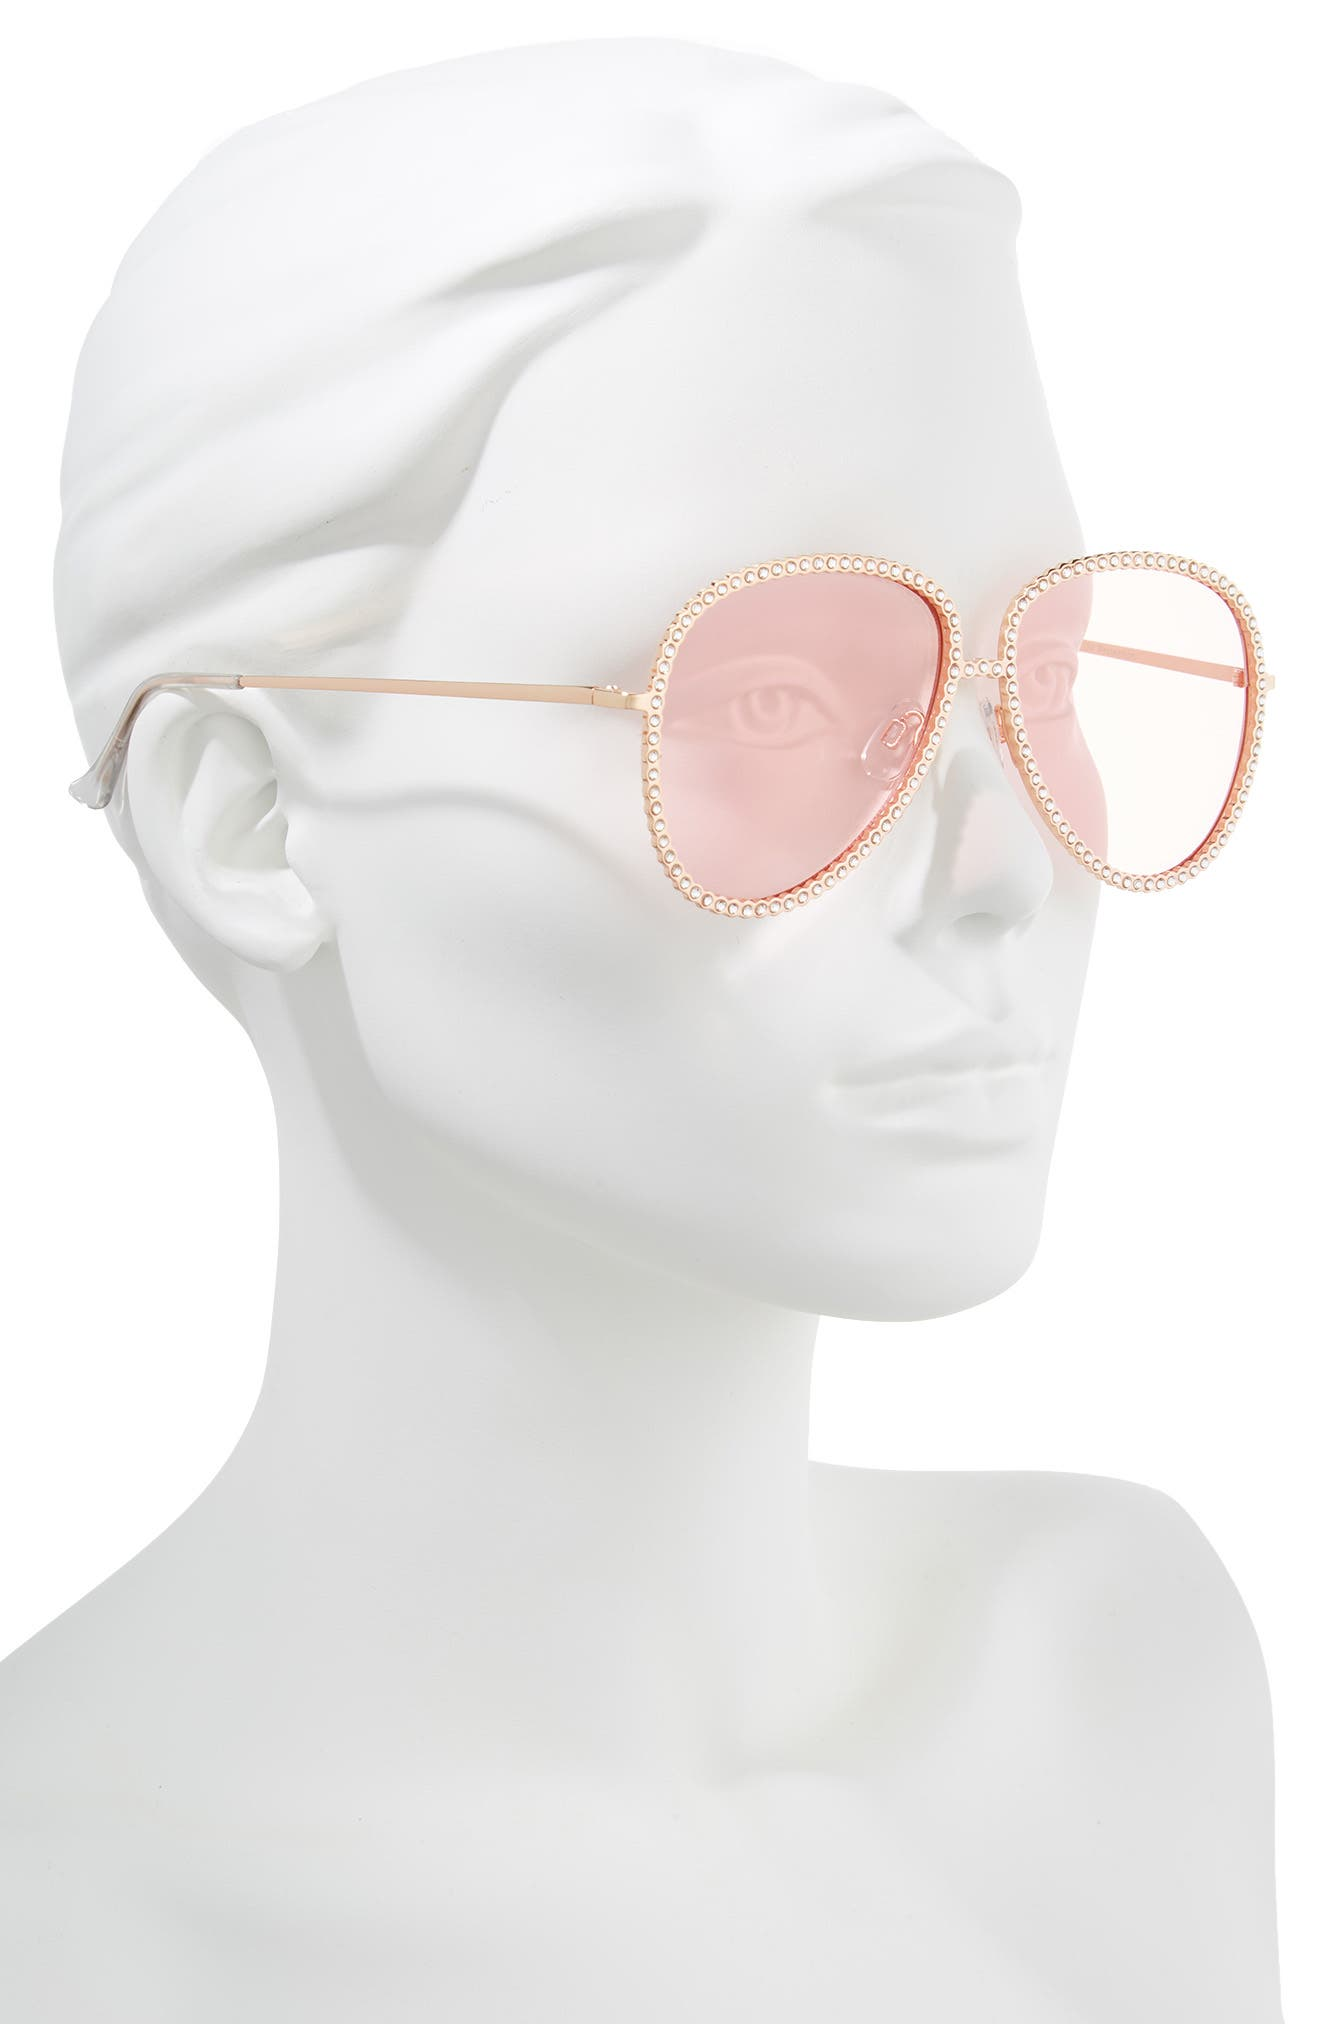 58mm Crystal Aviator Sunglasses,                             Alternate thumbnail 2, color,                             Rose Gold/ Pink